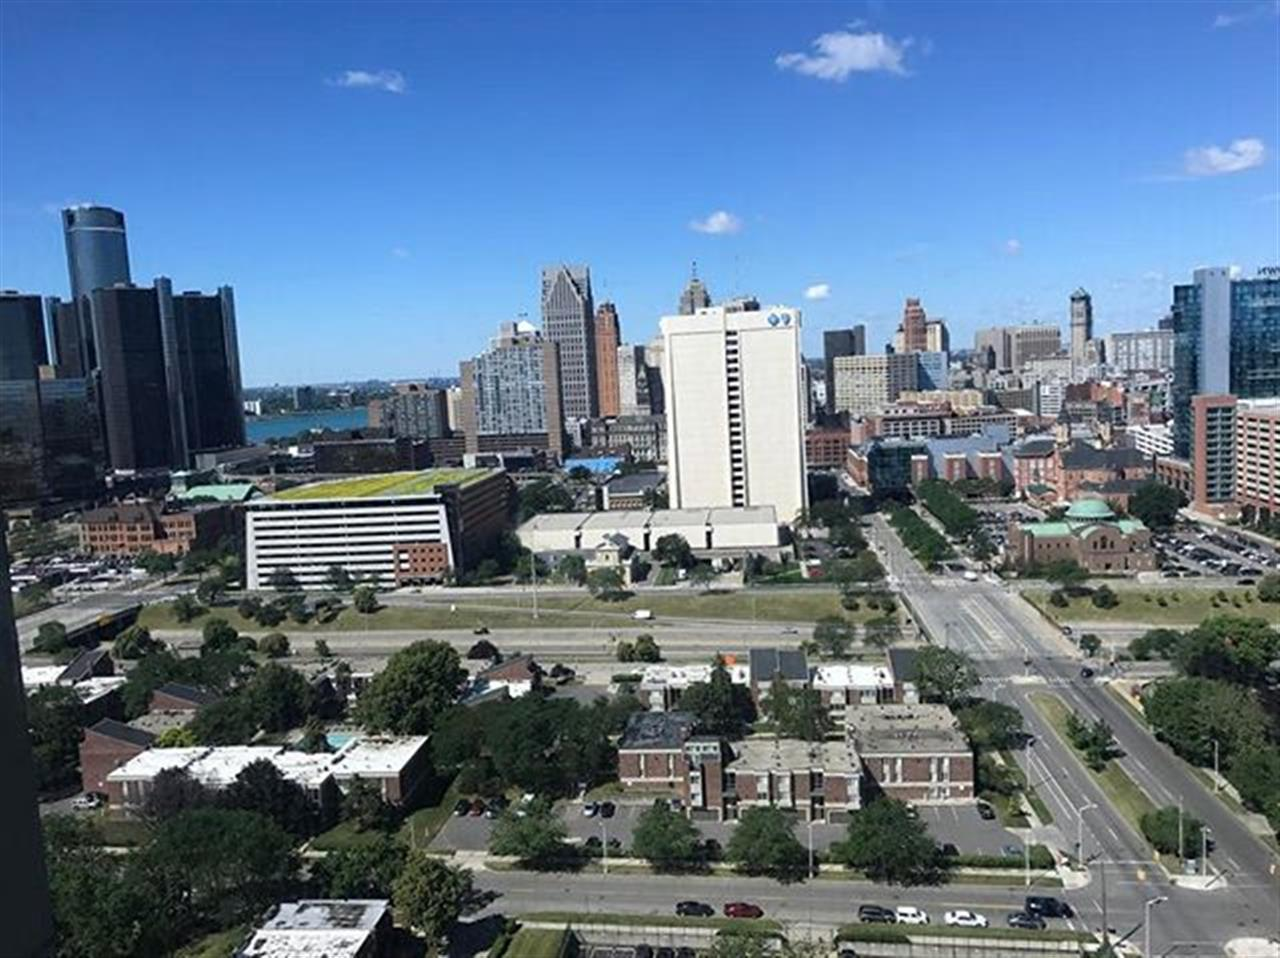 It's a beautiful day to be showing properties in Detroit! Love the views... #movetodetroit #detroit #michigan #leadingrelocal